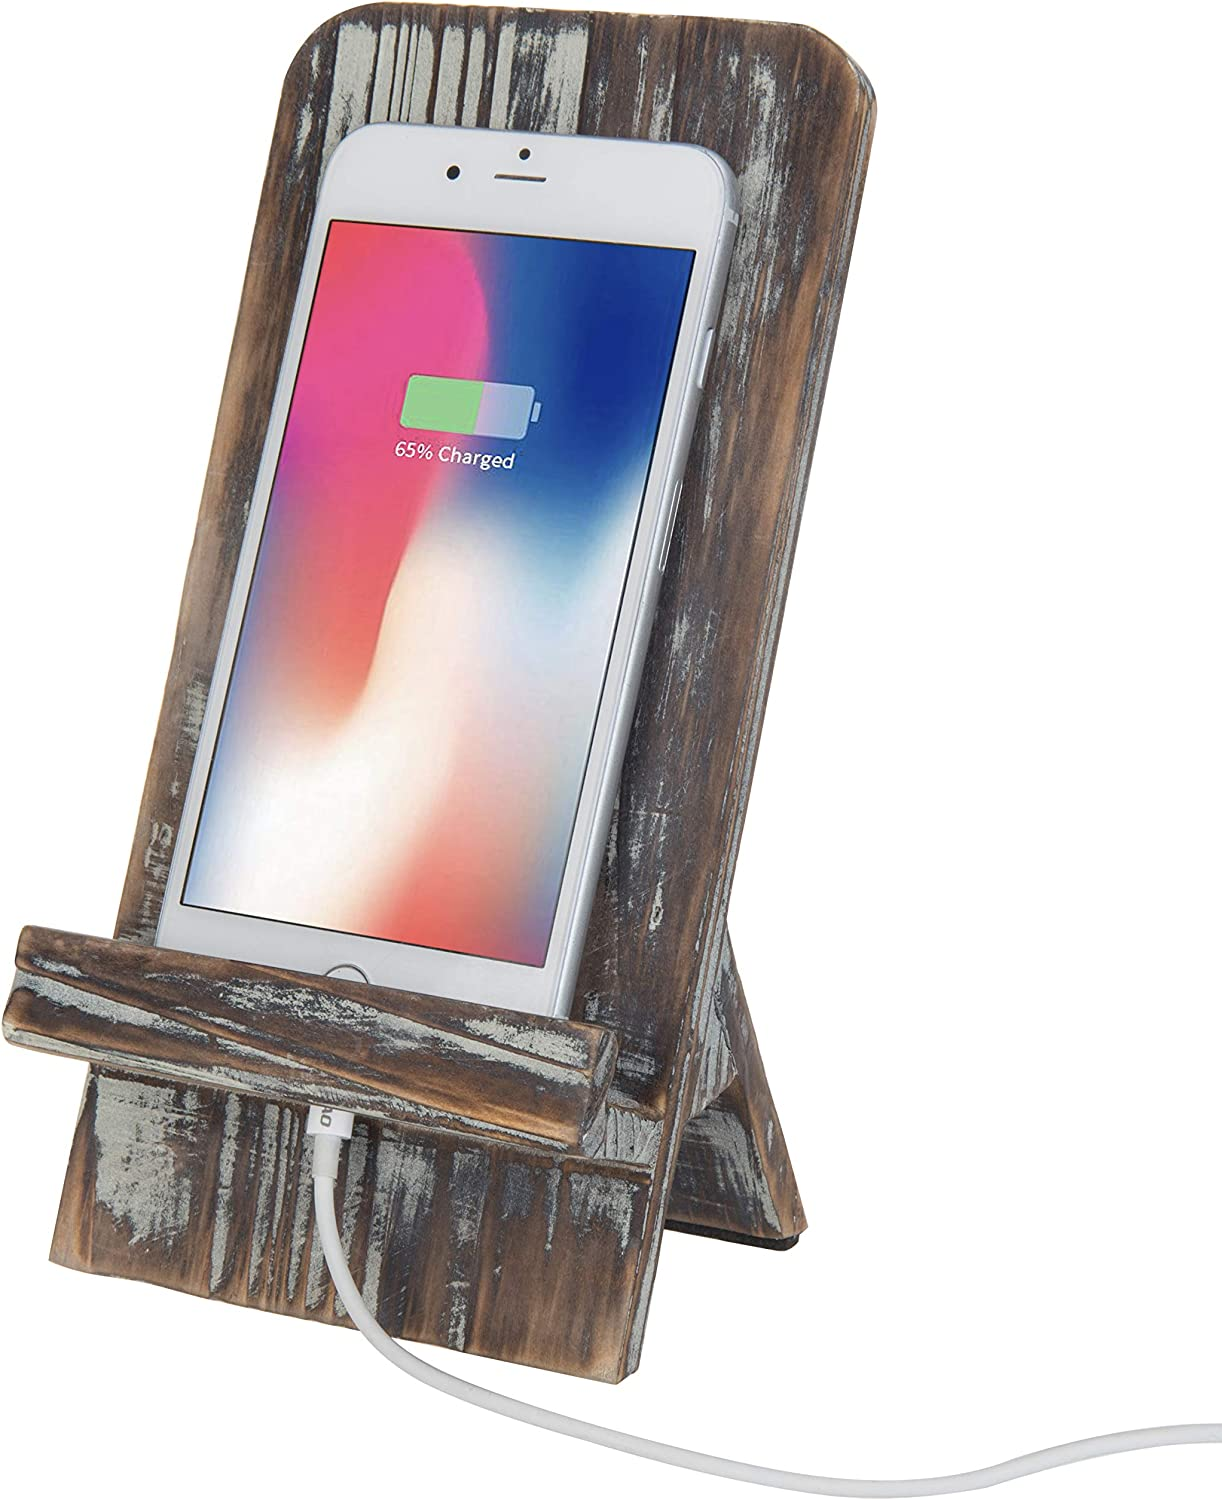 MyGift Rustic Barnwood Universal Smartphone Dock Charging Stand, Desktop Cell Phone Cradle, Brown